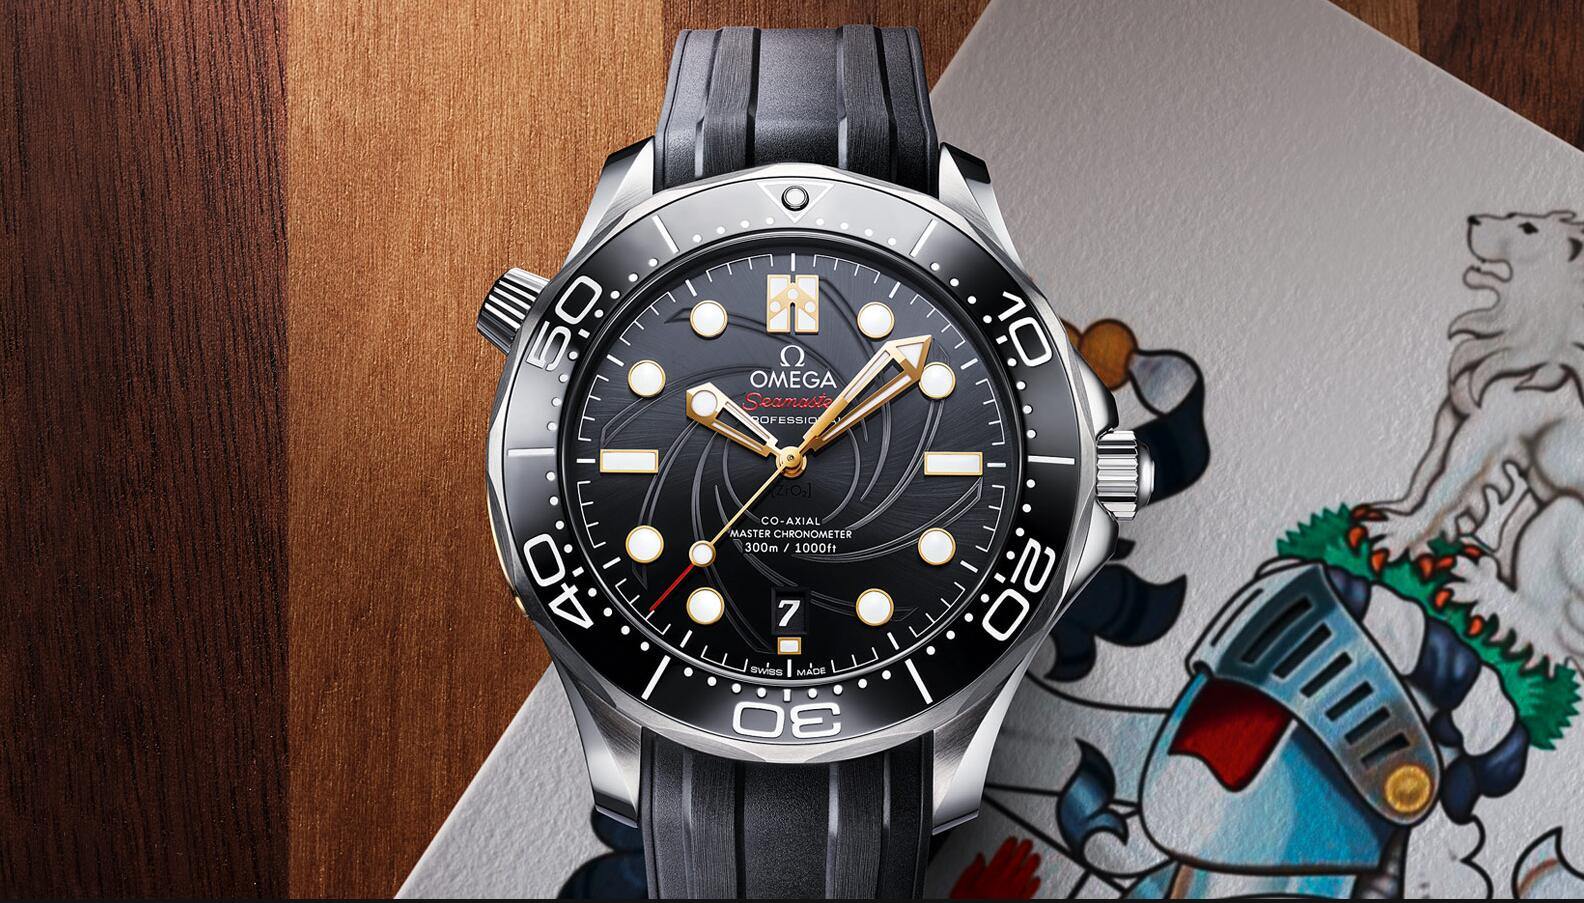 The water resistant copy watches are made from stainless steel.